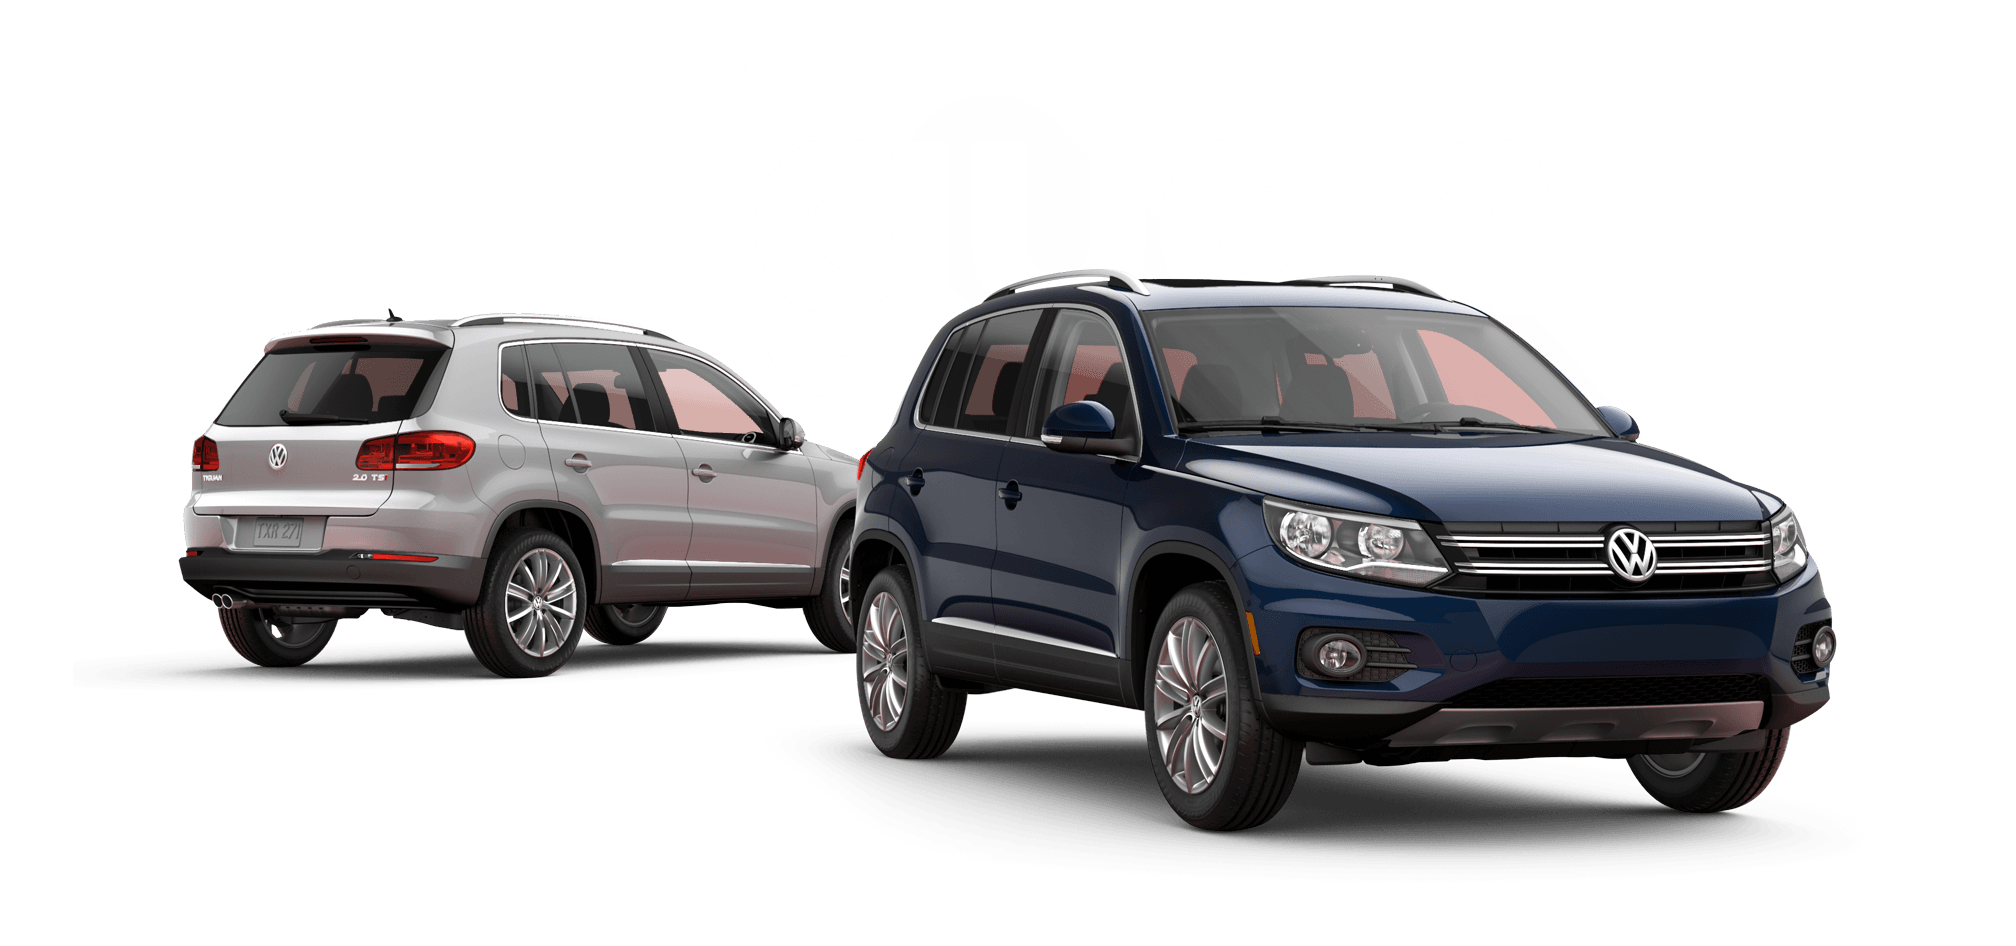 2015 volkswagen tiguan information and photos zombiedrive. Black Bedroom Furniture Sets. Home Design Ideas